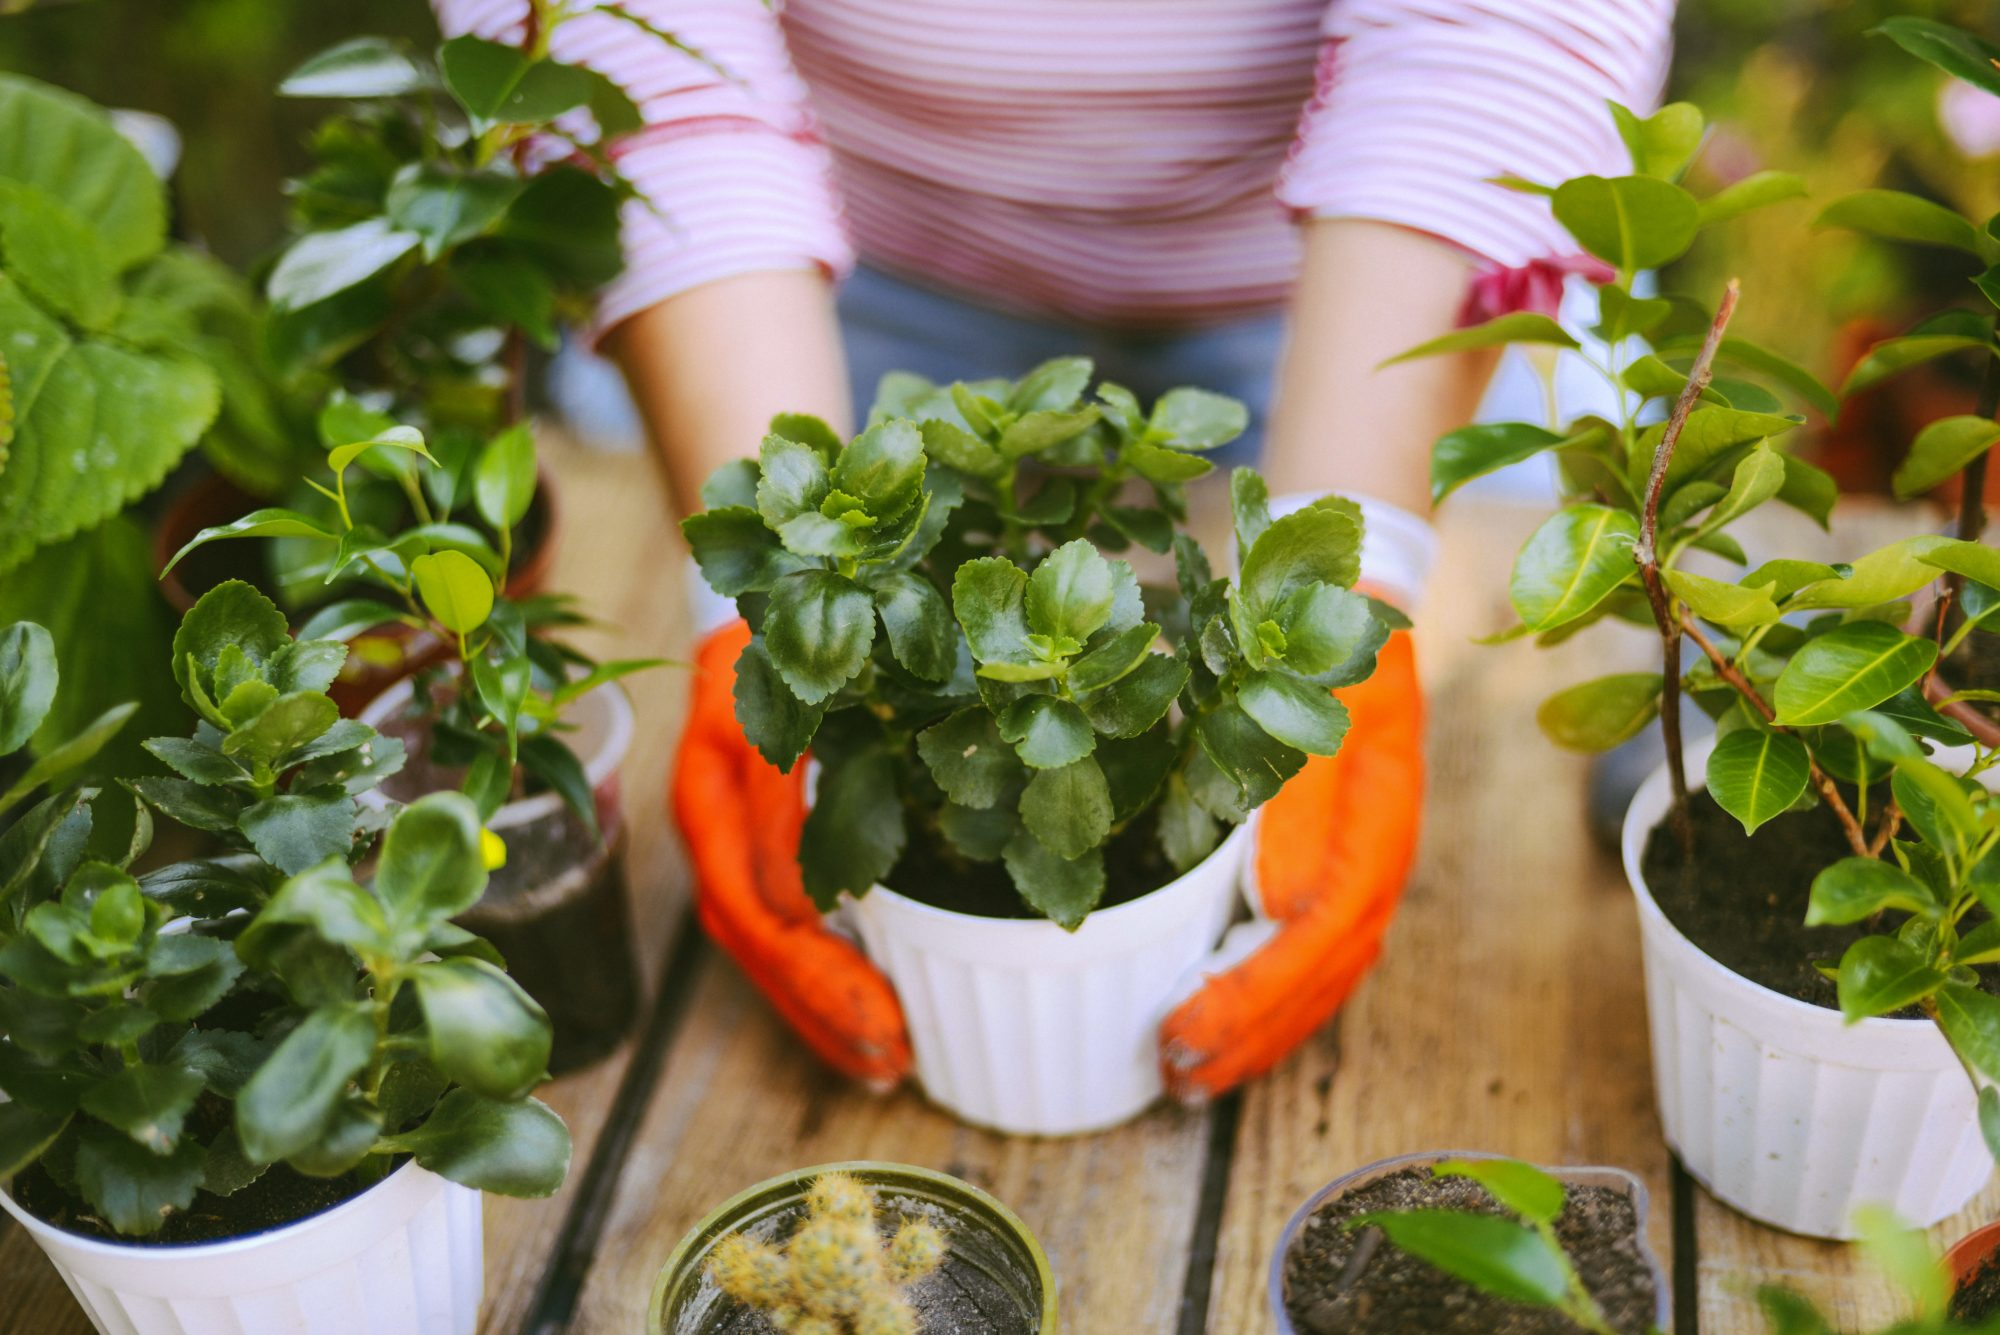 Caring for Plants